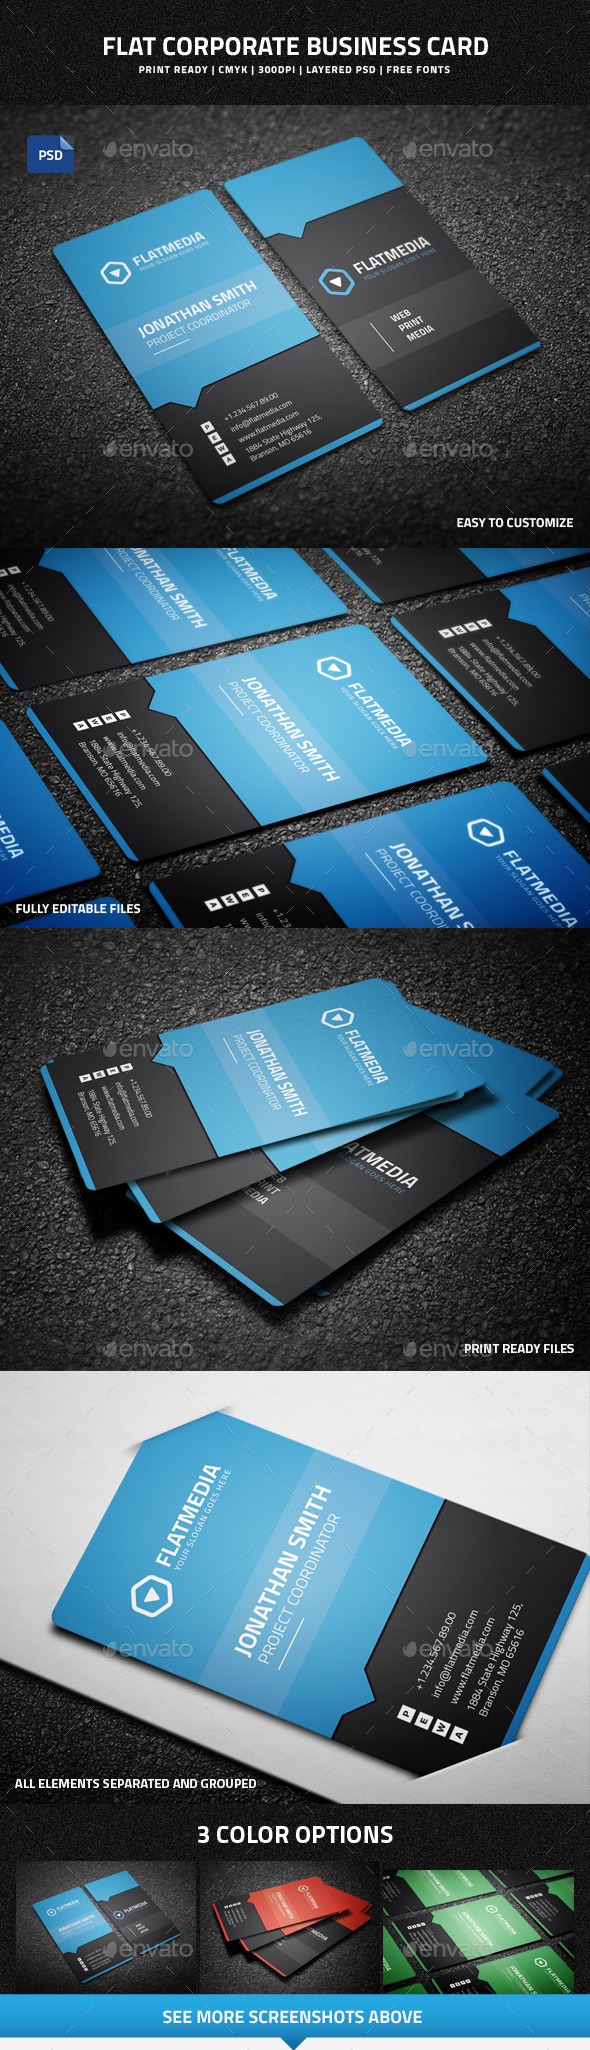 Flat Corporate Business Card - 47 - Corporate Business Cards